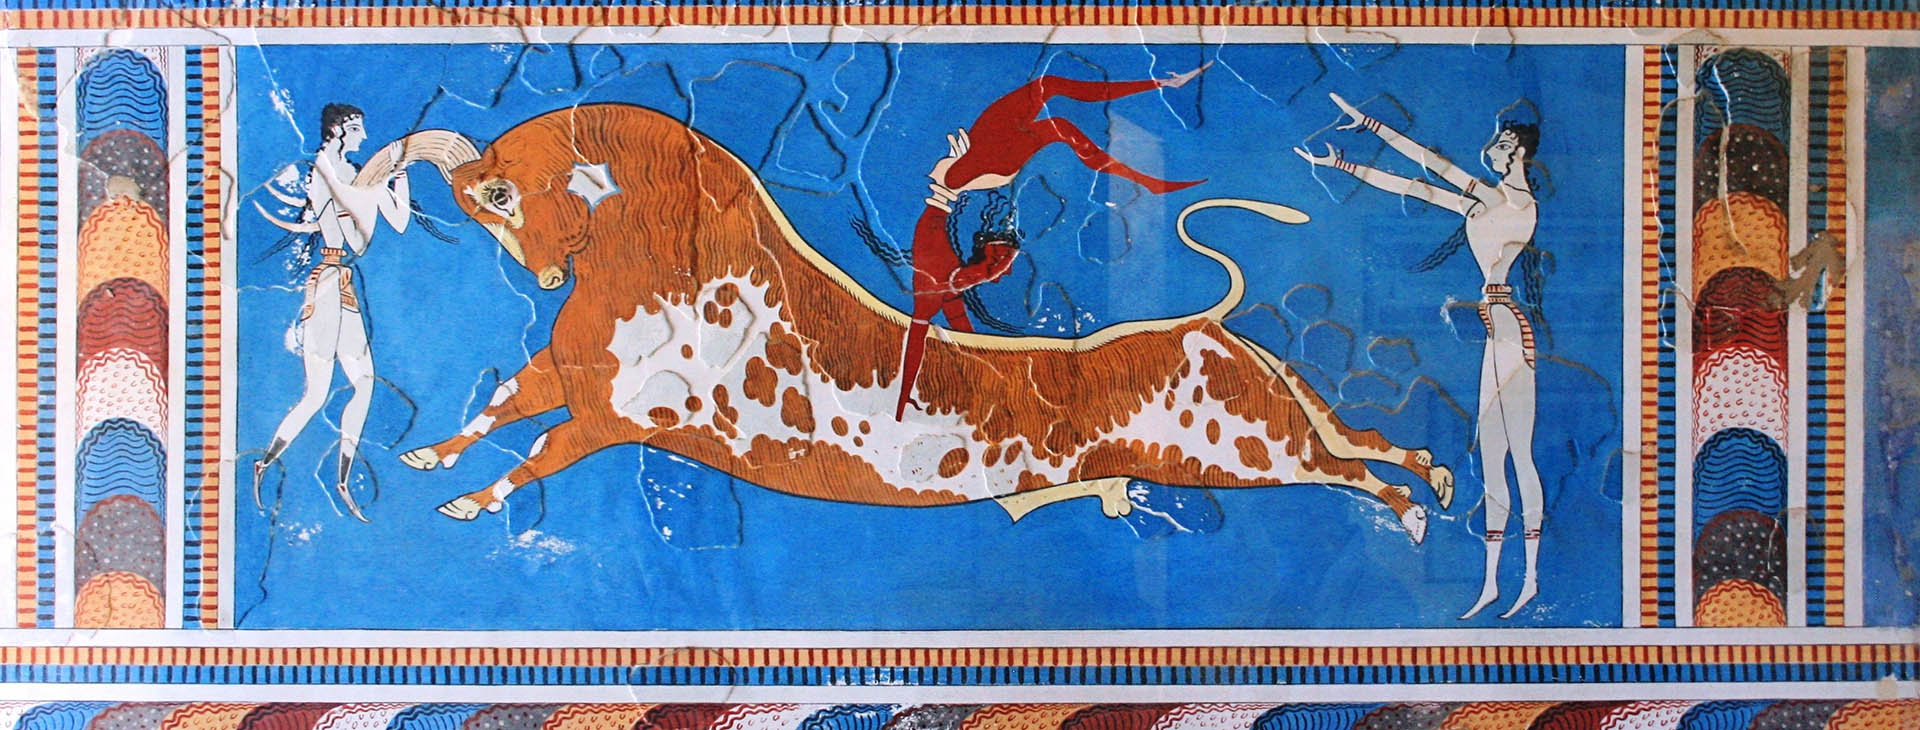 Bull-leaping, fresco at the Minoan palace of Knossos, Heraklion